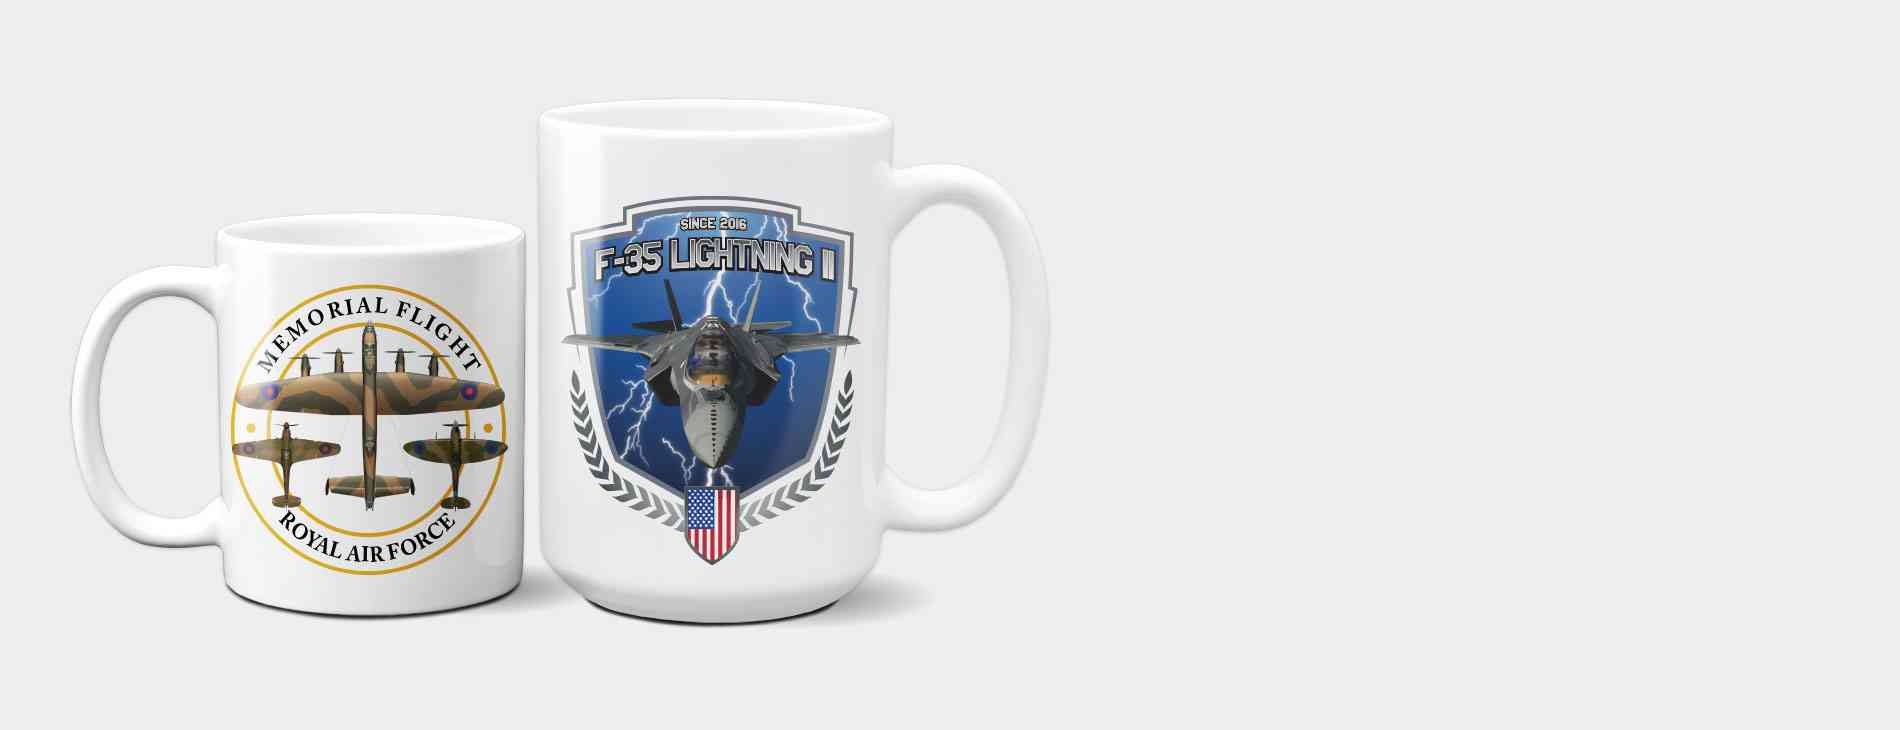 /catalogsearch/result/?q=mugs